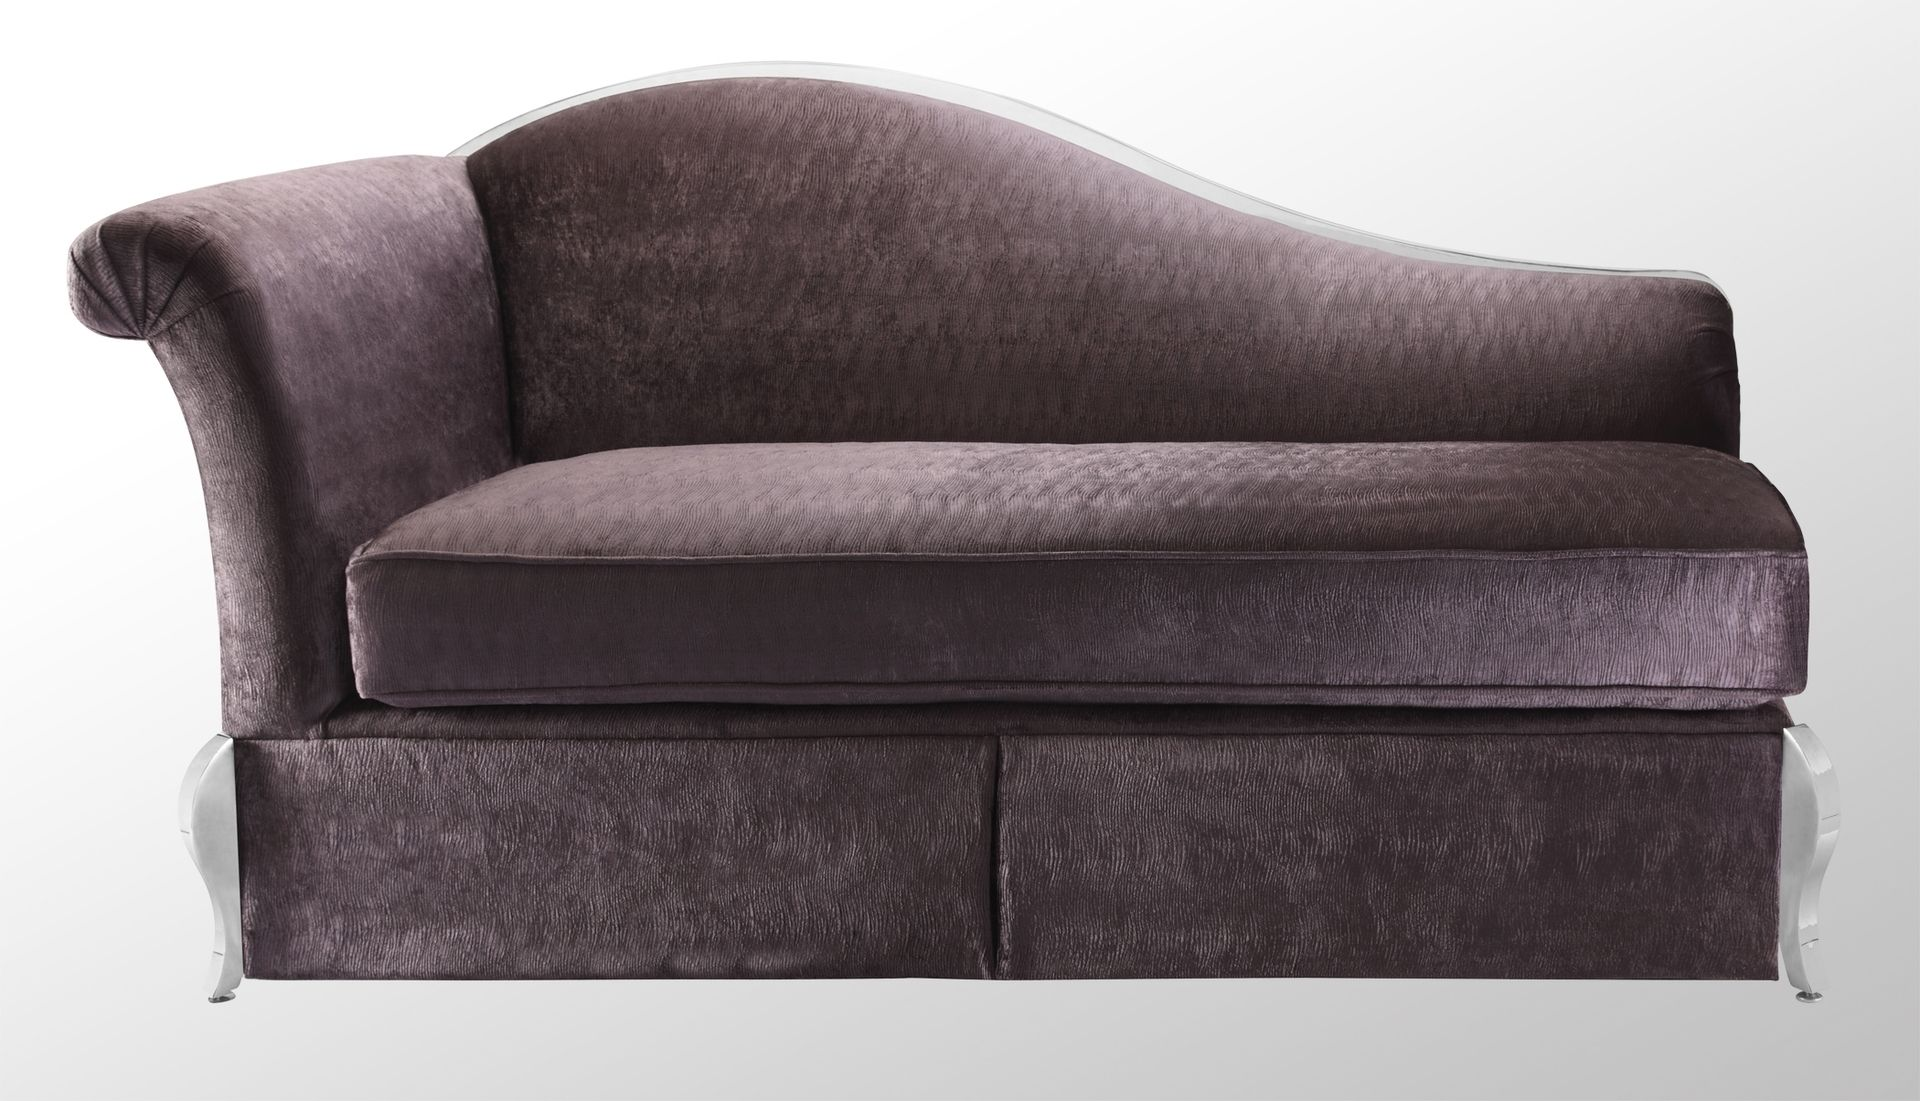 modern sofa sleepers sleeper bed chaise sofabeds and grey dark condo chairs fabric sofas